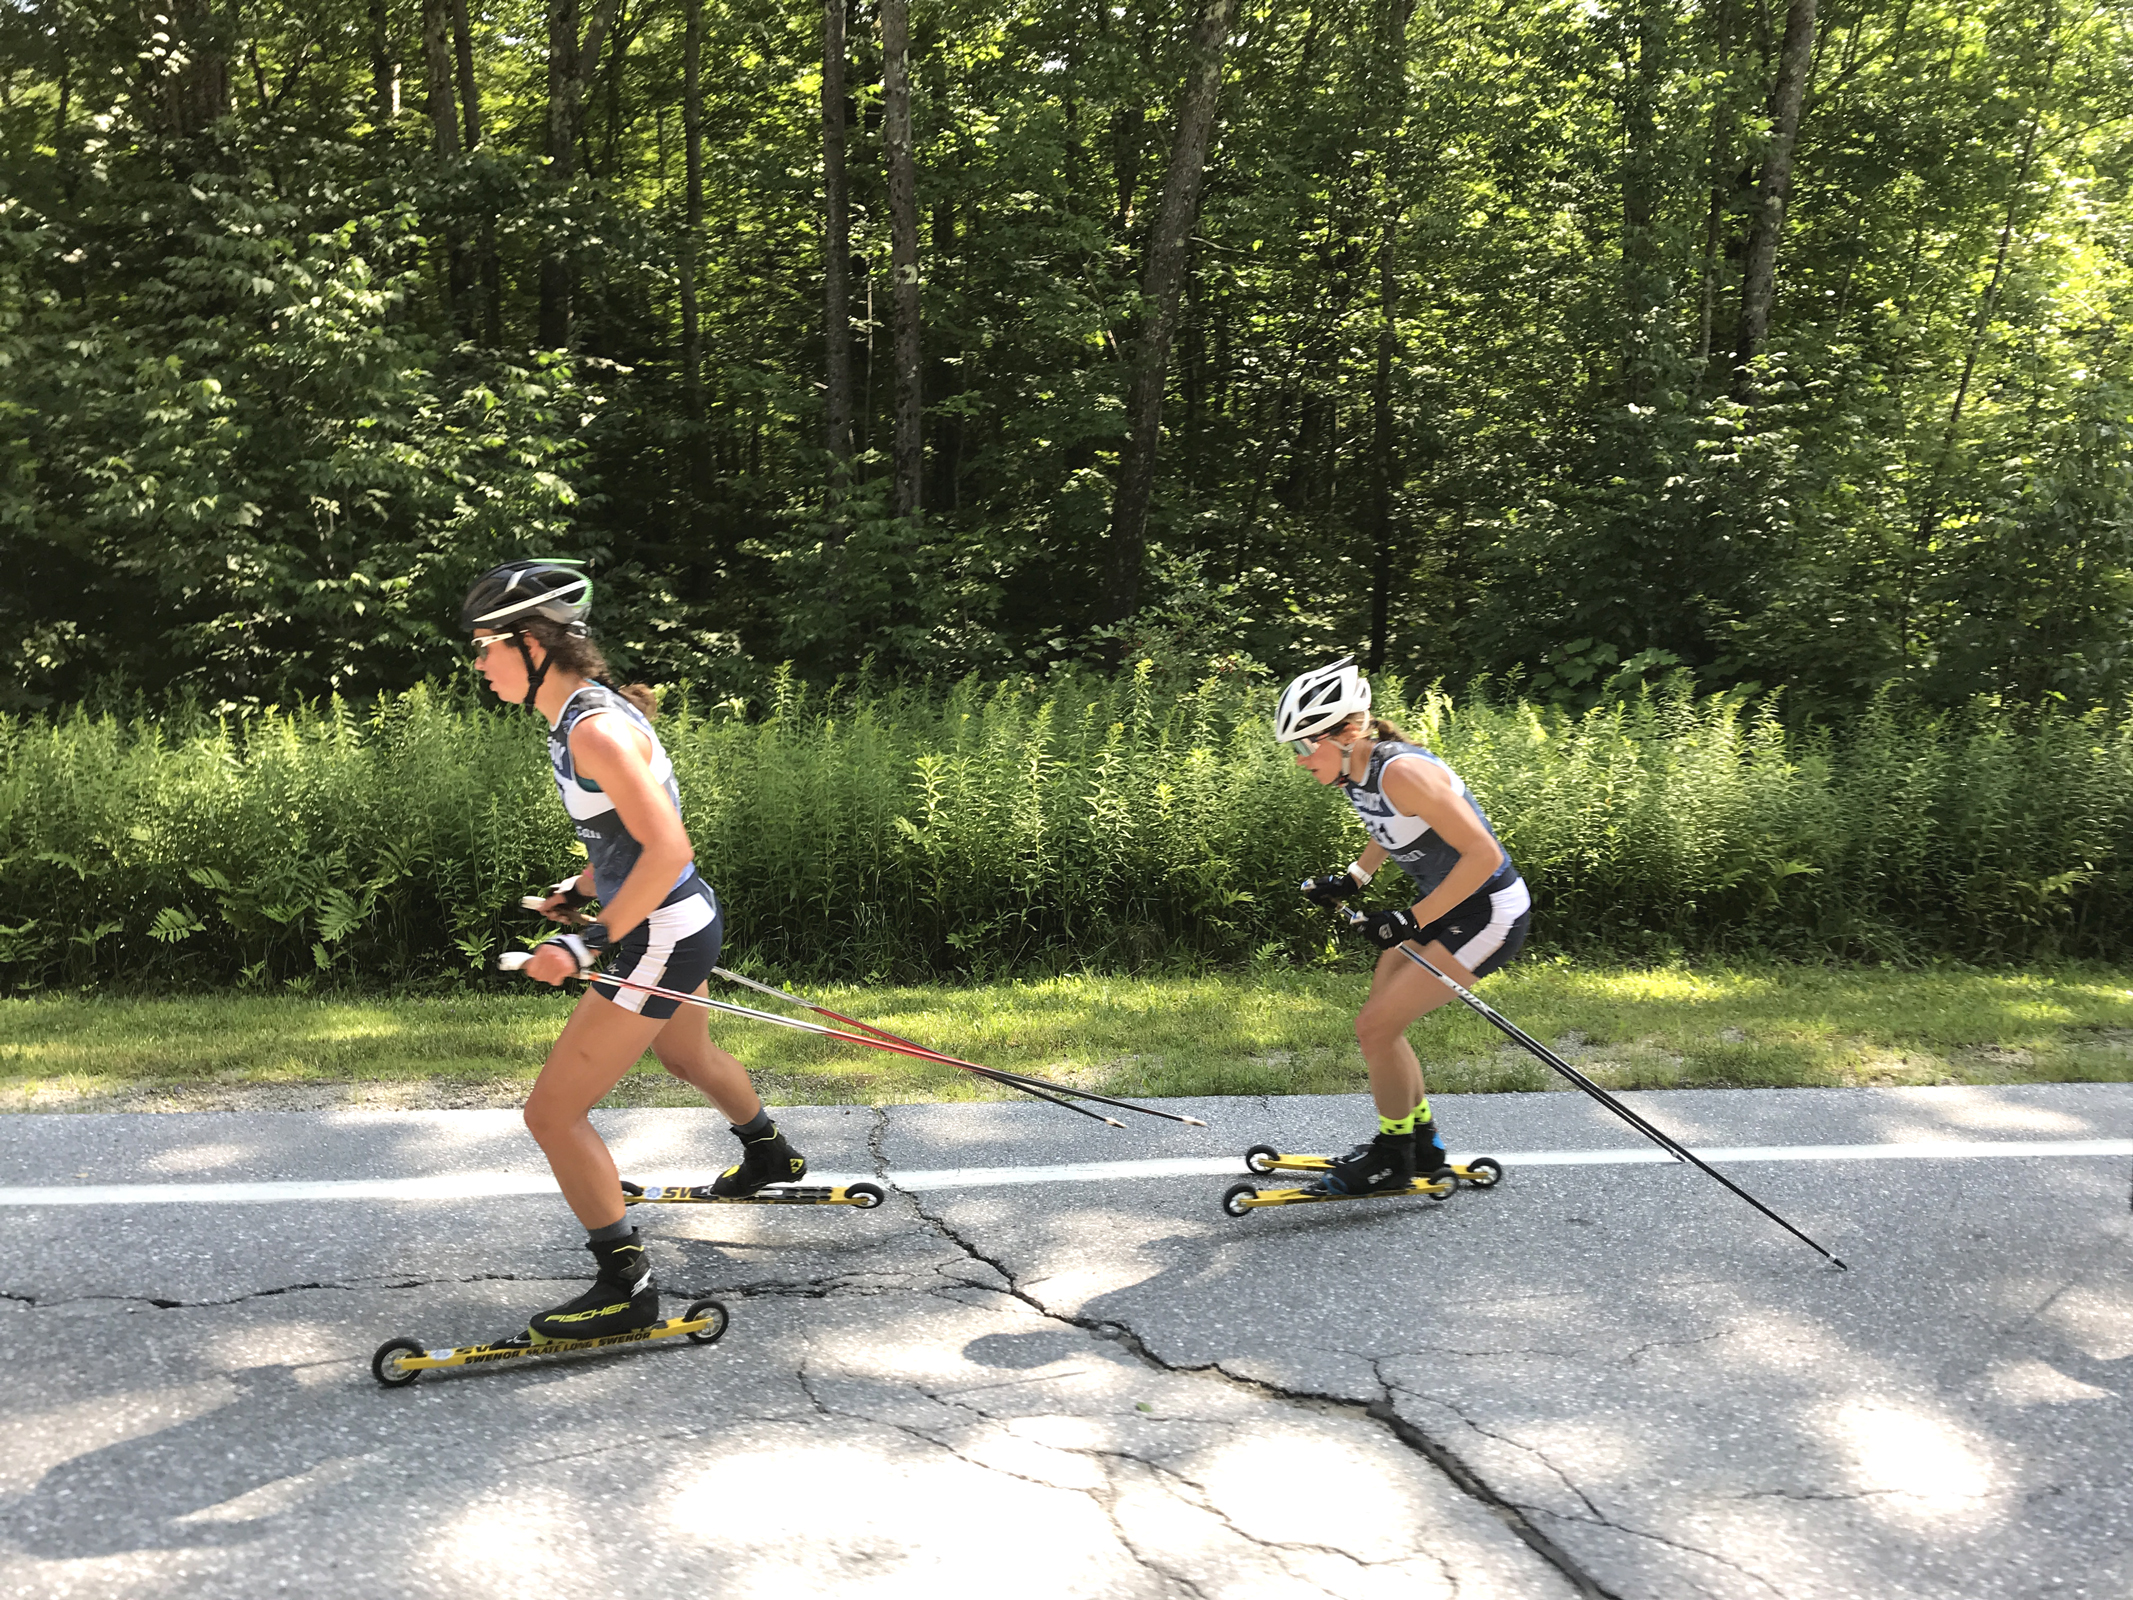 Caitlin Patterson leads Sophie Caldwell at App Gap Challenge